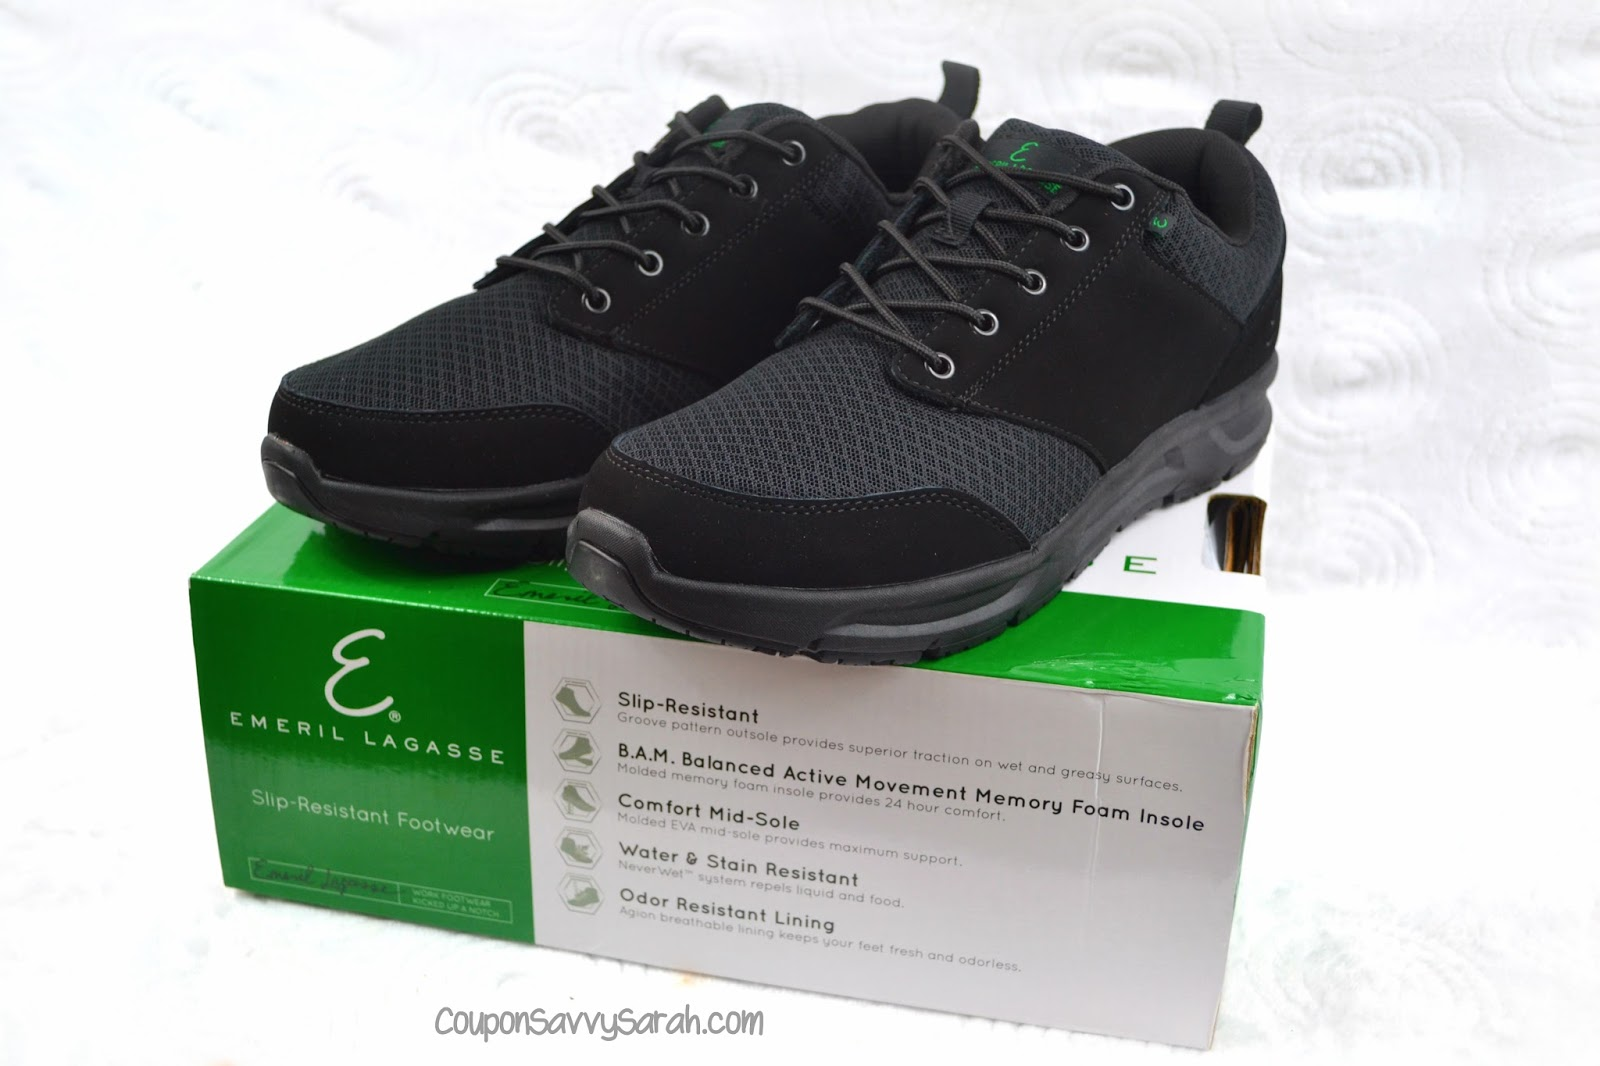 shoes to comfortable coupon own of slip enter new from your the resistant now sarah line win mesh work choose comforter pair savvy s for out shoe size try lagasse quarter emeril a chance footwear men